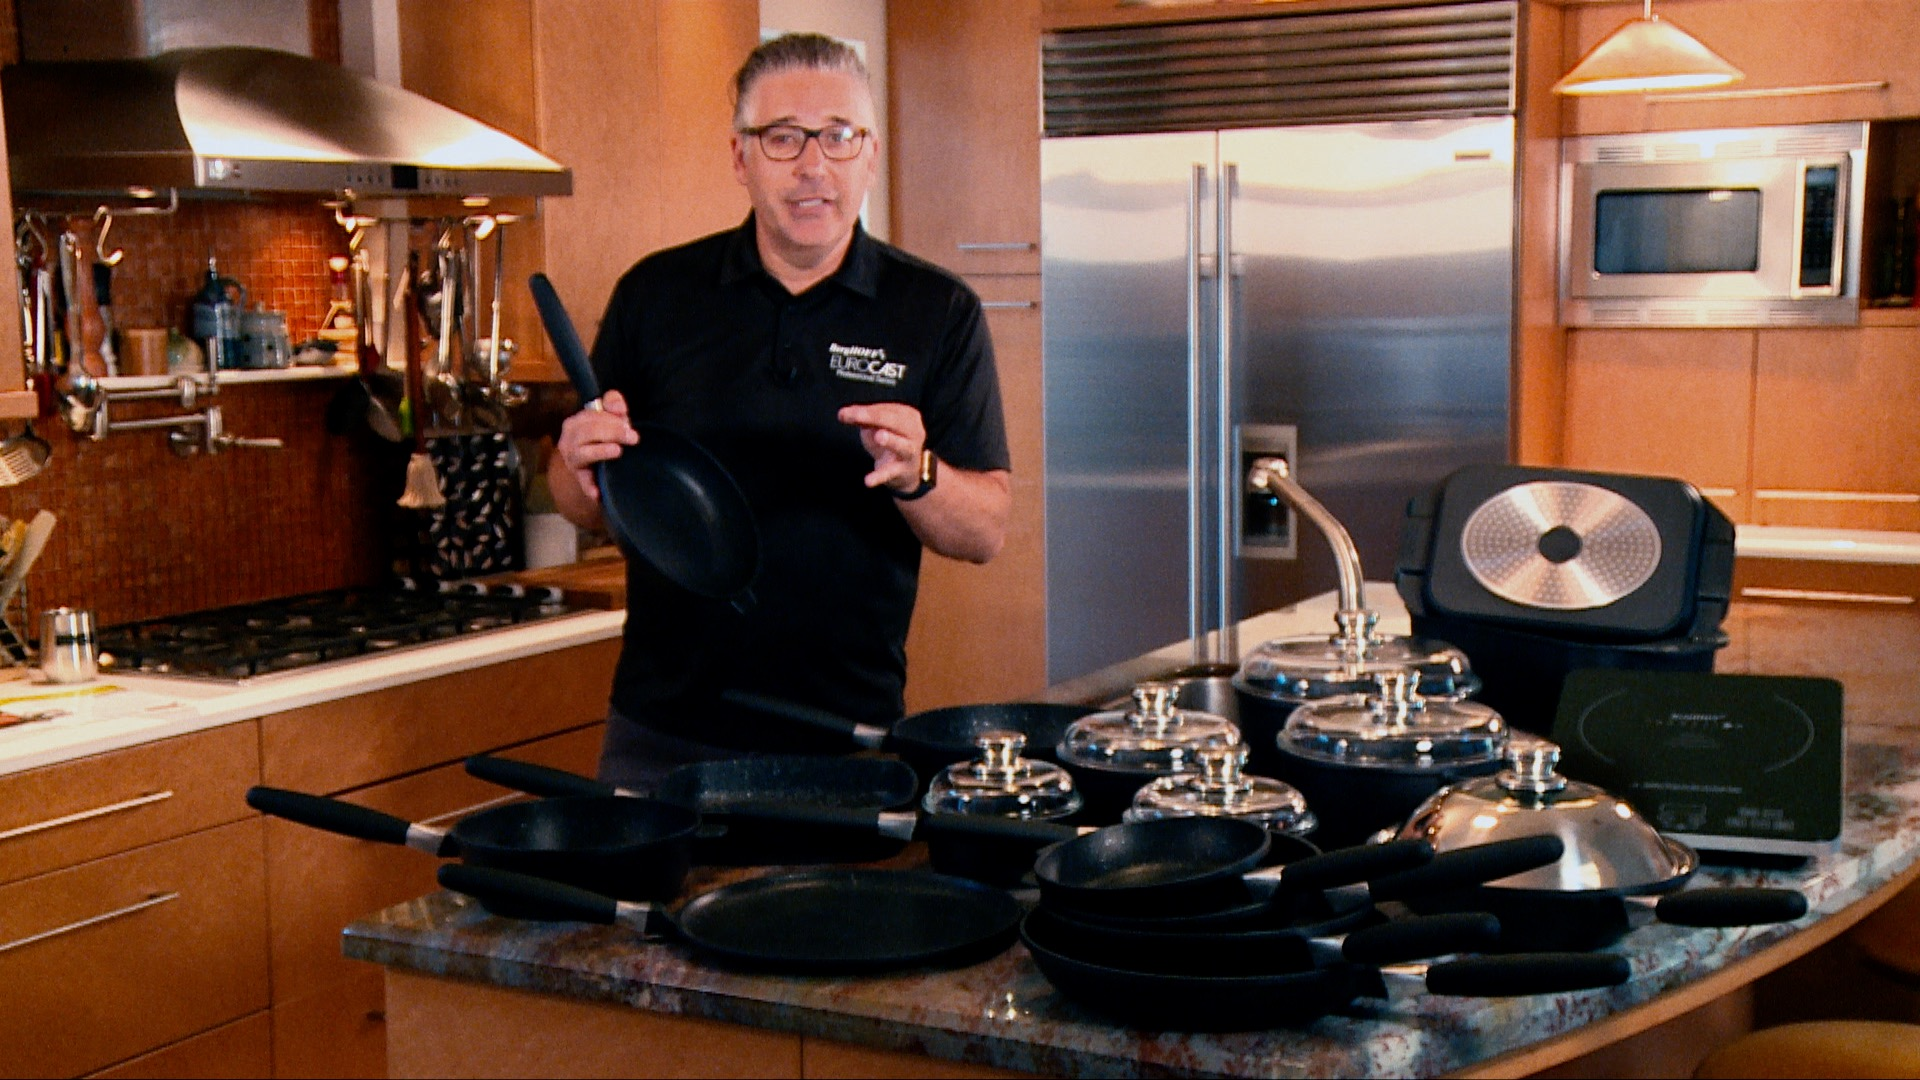 EuroCAST's Executive Vice President, Jay Laisné, on inStyle TV. Here he shows off our best-selling sauté pan, innovation in our lids, and the entire Executive Set.